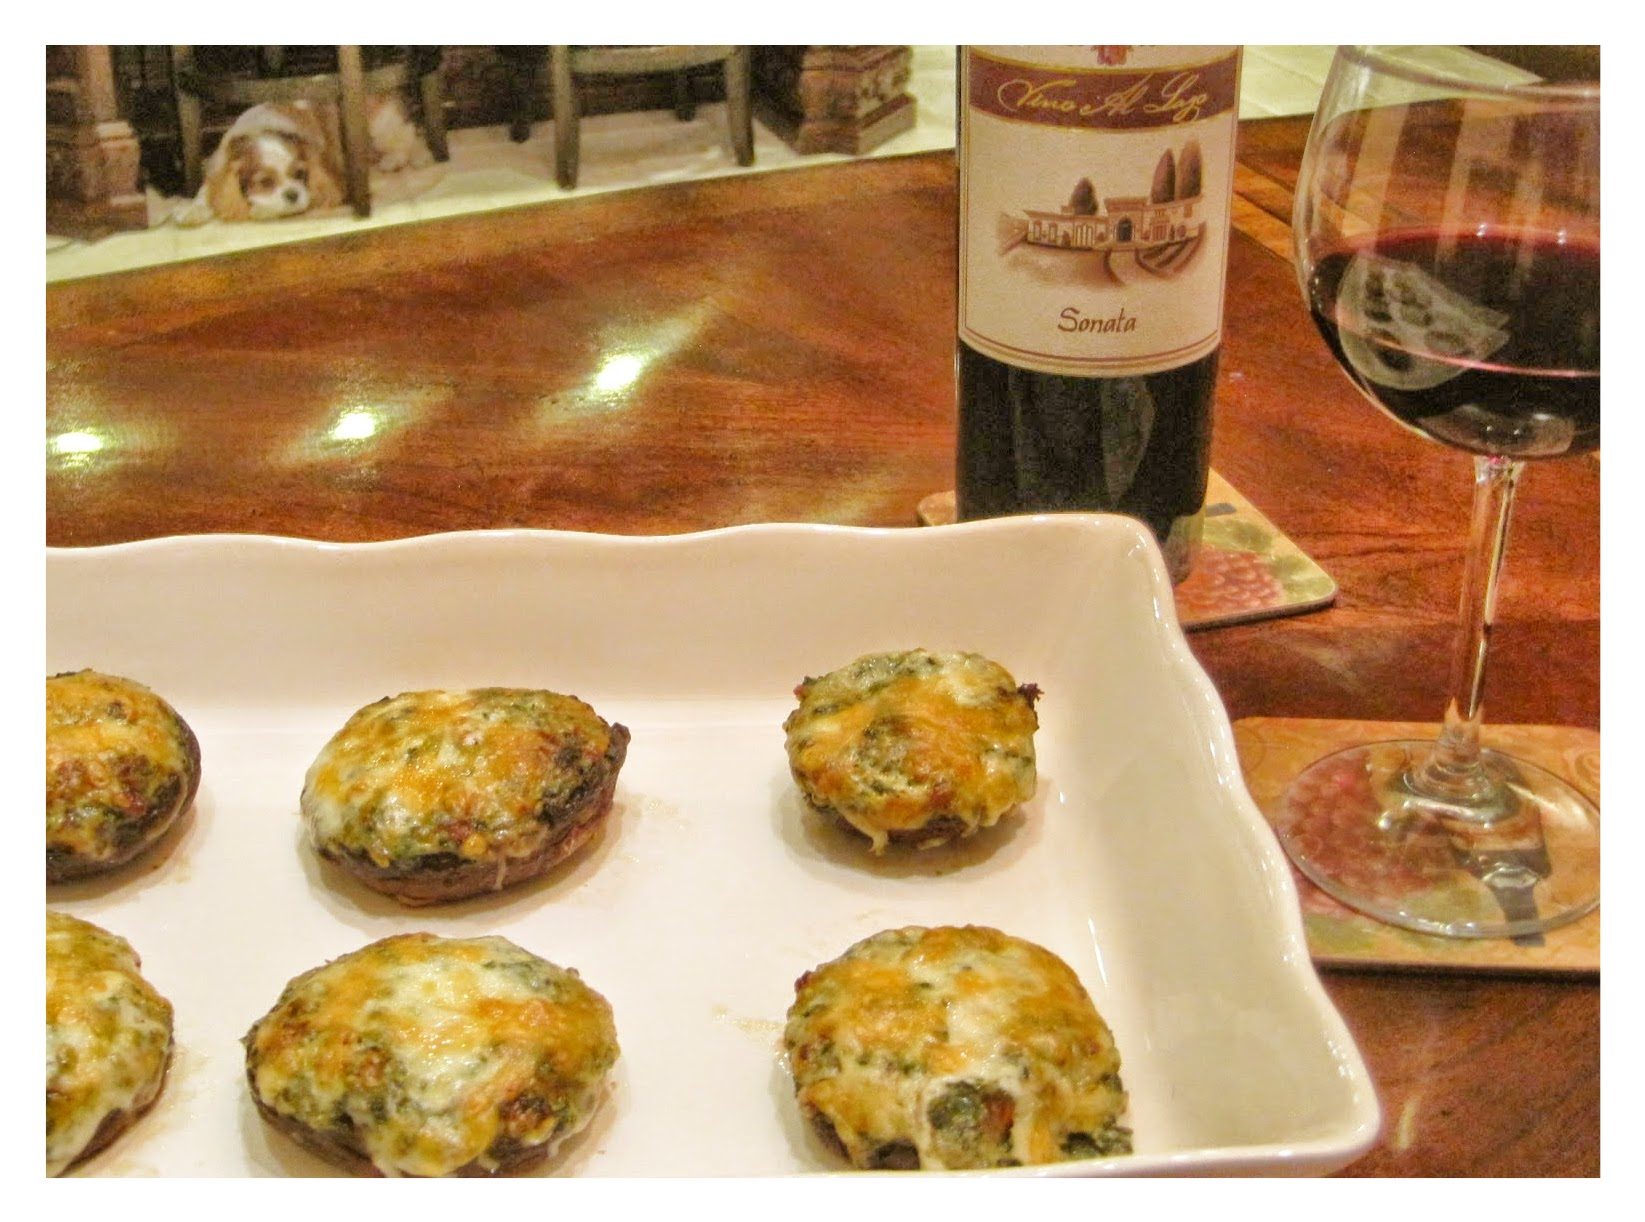 Mushrooms stuffed with Spinach, Kale, and Cheeses recipe image